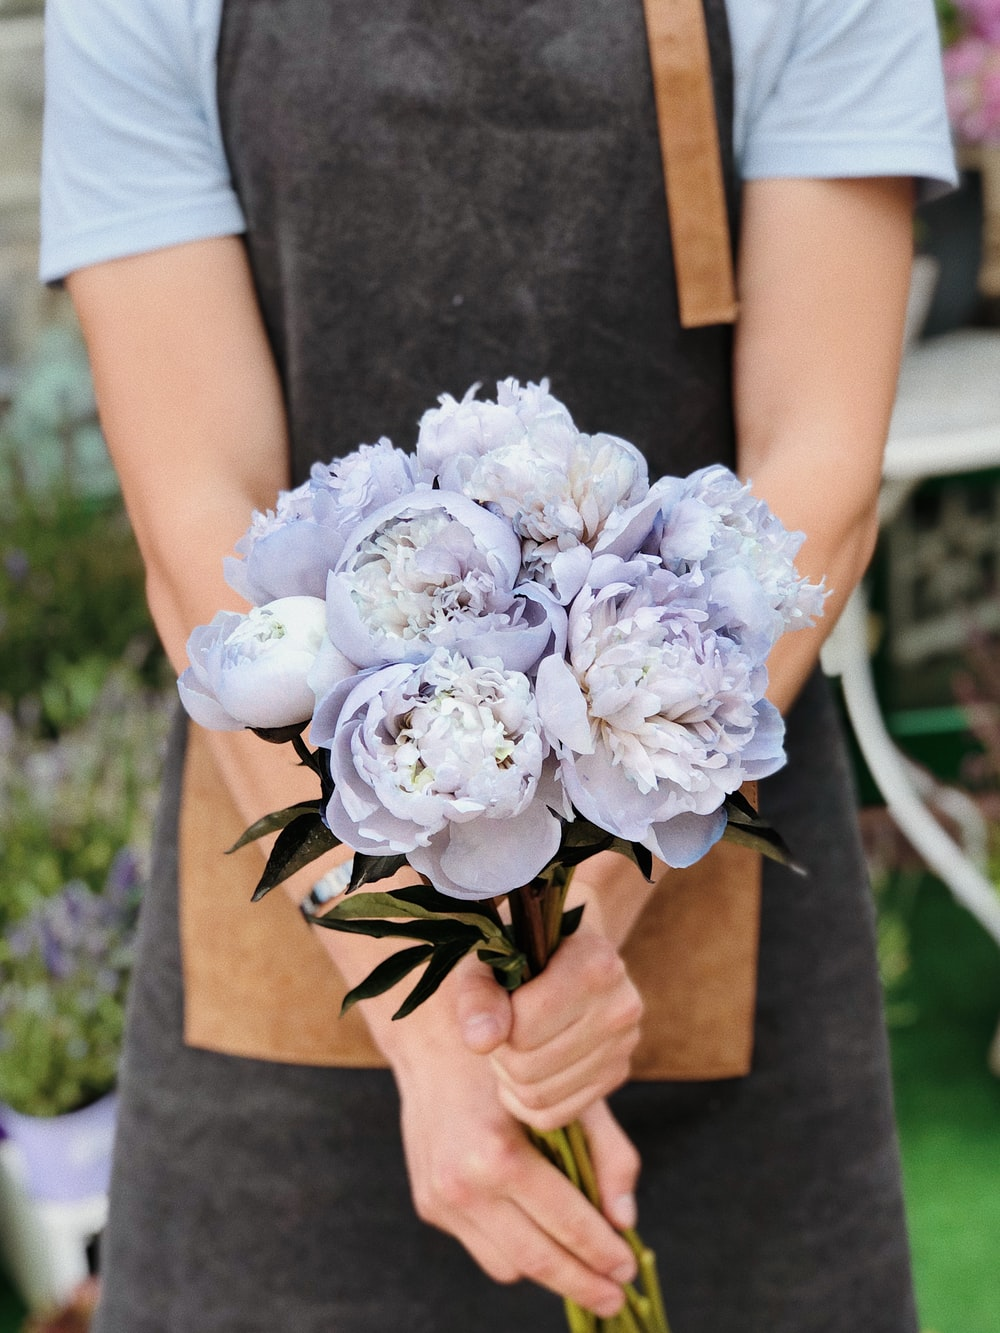 person holding blue flower